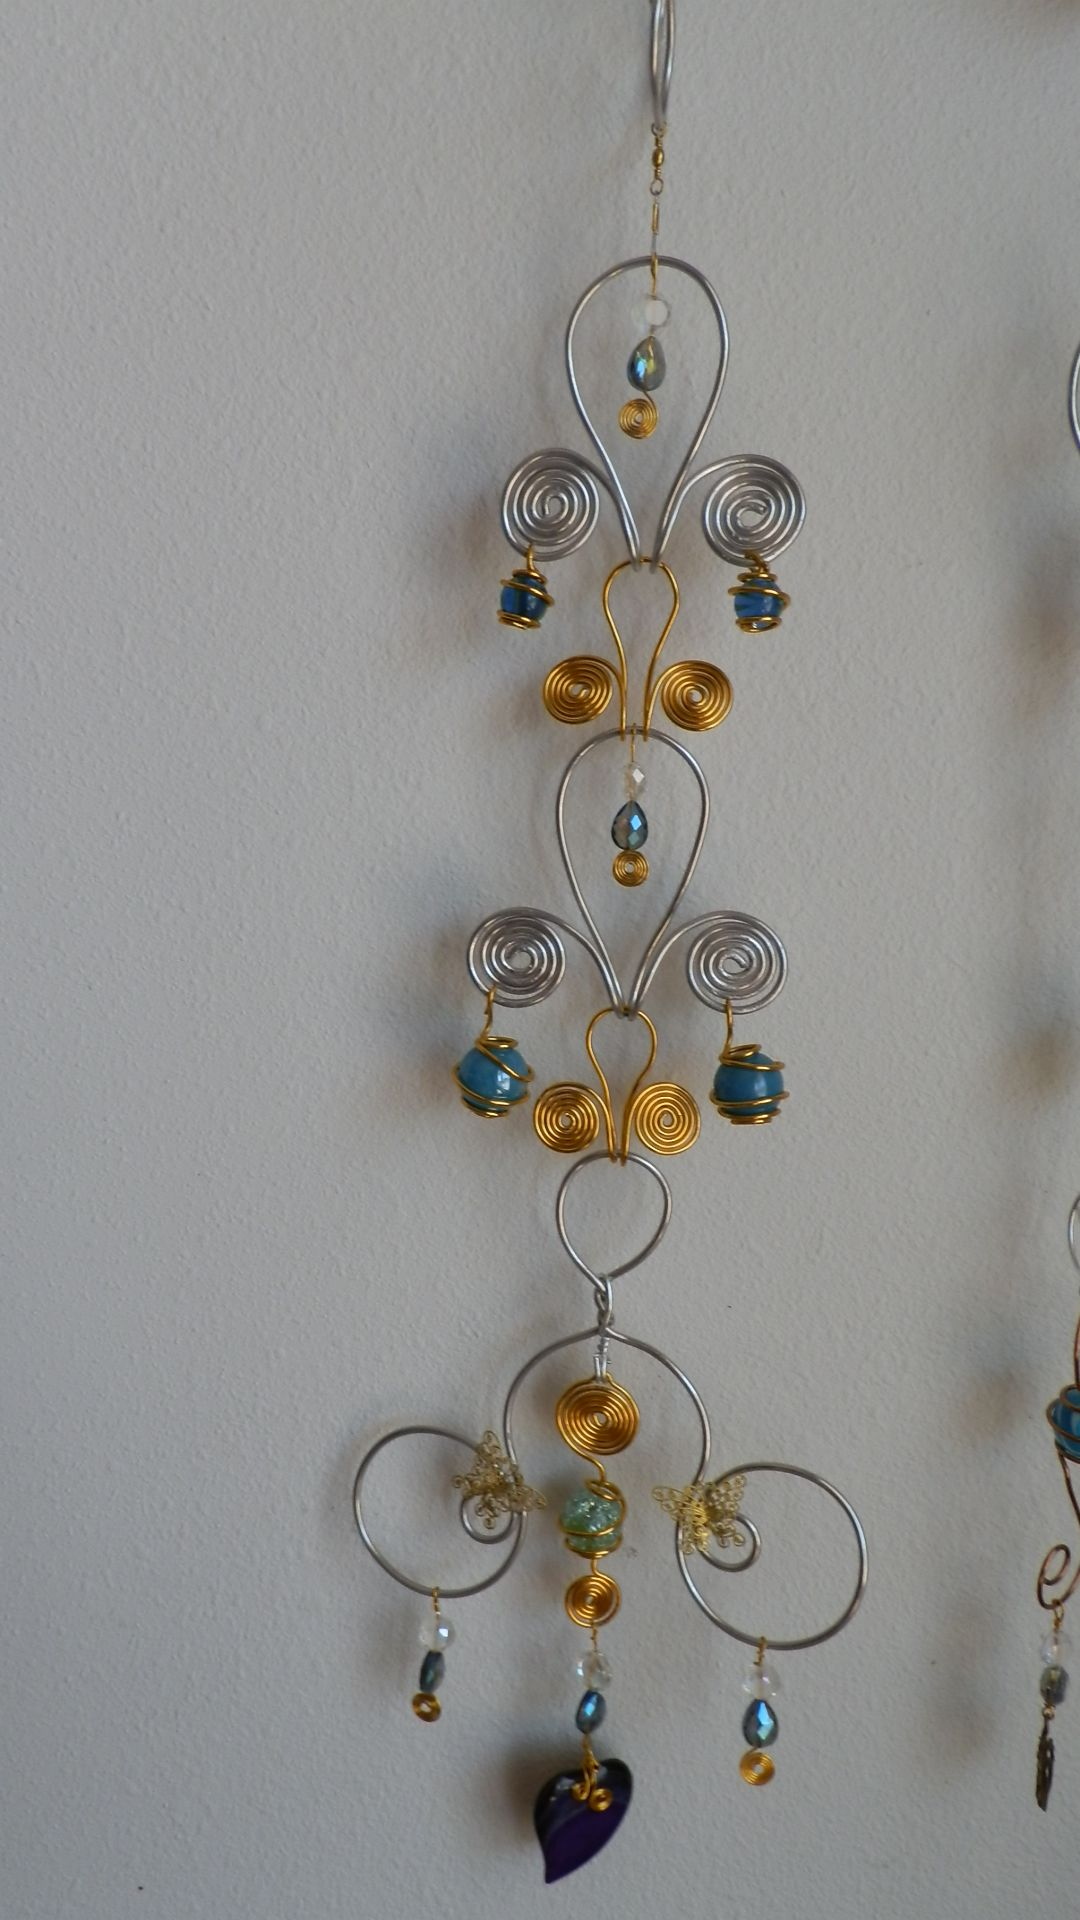 Sun Catcher Wind Chime Wire Marbles And Beads Handmade